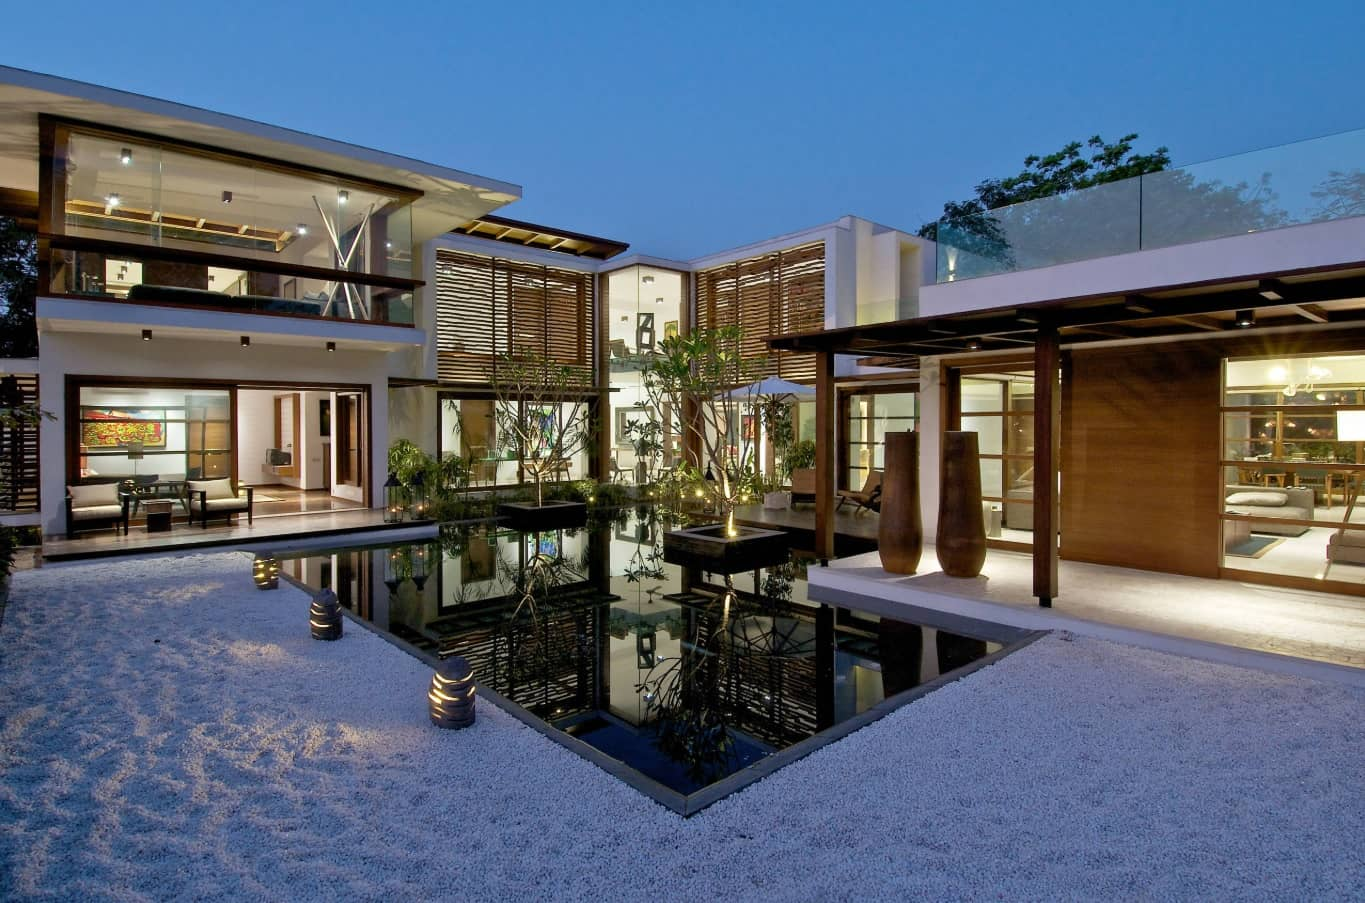 Modern Courtyard House Plans: Classic Luxury Nowadays. Japanese styled villa and white pebble covered courtyard